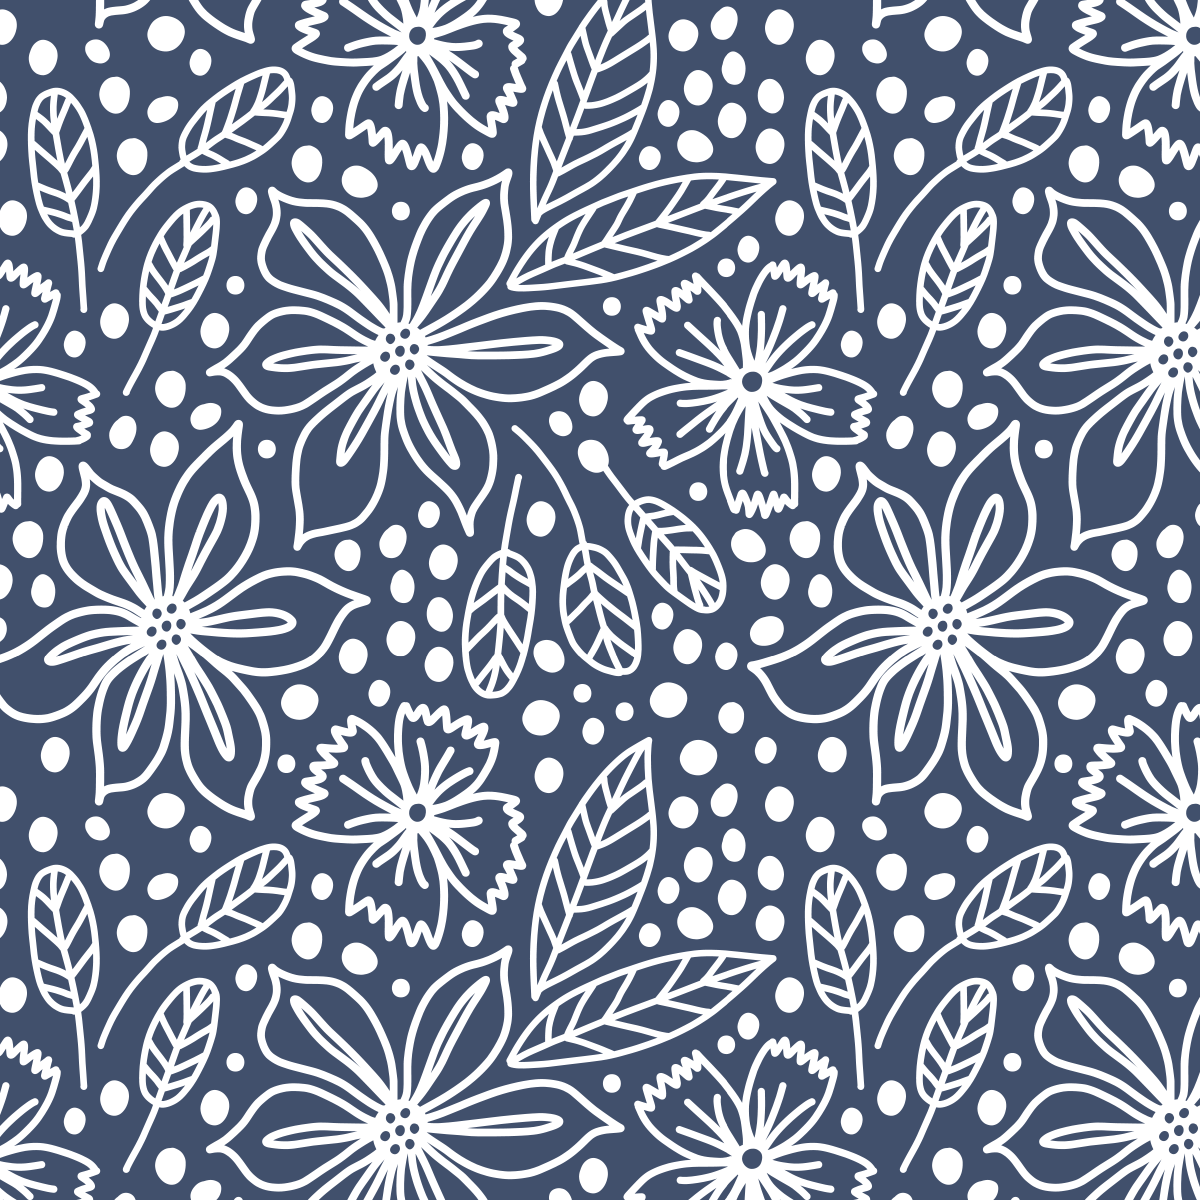 Navy floral pattern by Pace Creative Design Studio